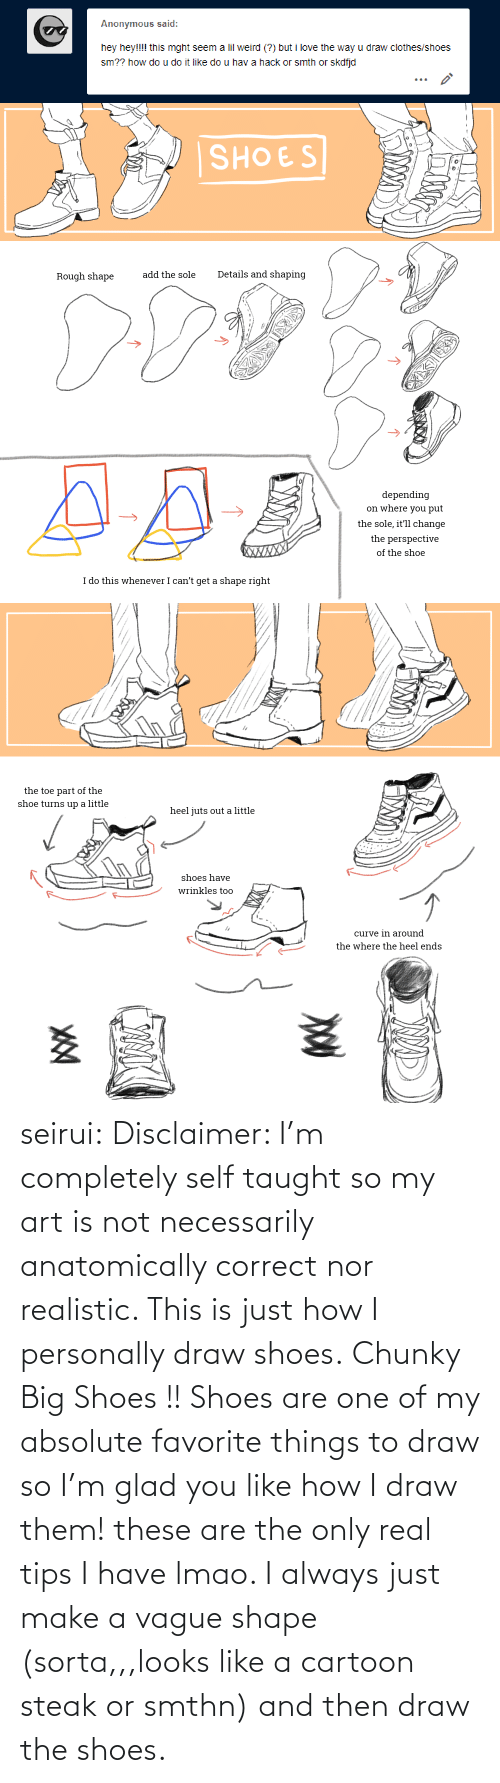 Cartoon: Anonymous said:  hey hey!!!! this mght seem a lil weird (?) but i love the way u draw clothes/shoes  sm?? how do u do it like do u hav a hack or smth or skdfjd   SHOES  Details and shaping  add the sole  Rough shape  depending  on where you put  the sole, it'll change  the perspective  XWXXX  of the shoe  I do this whenever I can't get a shape right   the toe part of the  shoe turns up a little  heel juts out a little  shoes have  wrinkles too  curve in around  the where the heel ends seirui: Disclaimer: I'm completely self taught so my art is not necessarily anatomically correct nor realistic. This is just how I personally draw shoes. Chunky Big Shoes !! Shoes are one of my absolute favorite things to draw so I'm glad you like how I draw them! these are the only real tips I have lmao. I always just make a vague shape (sorta,,,looks like a cartoon steak or smthn) and then draw the shoes.